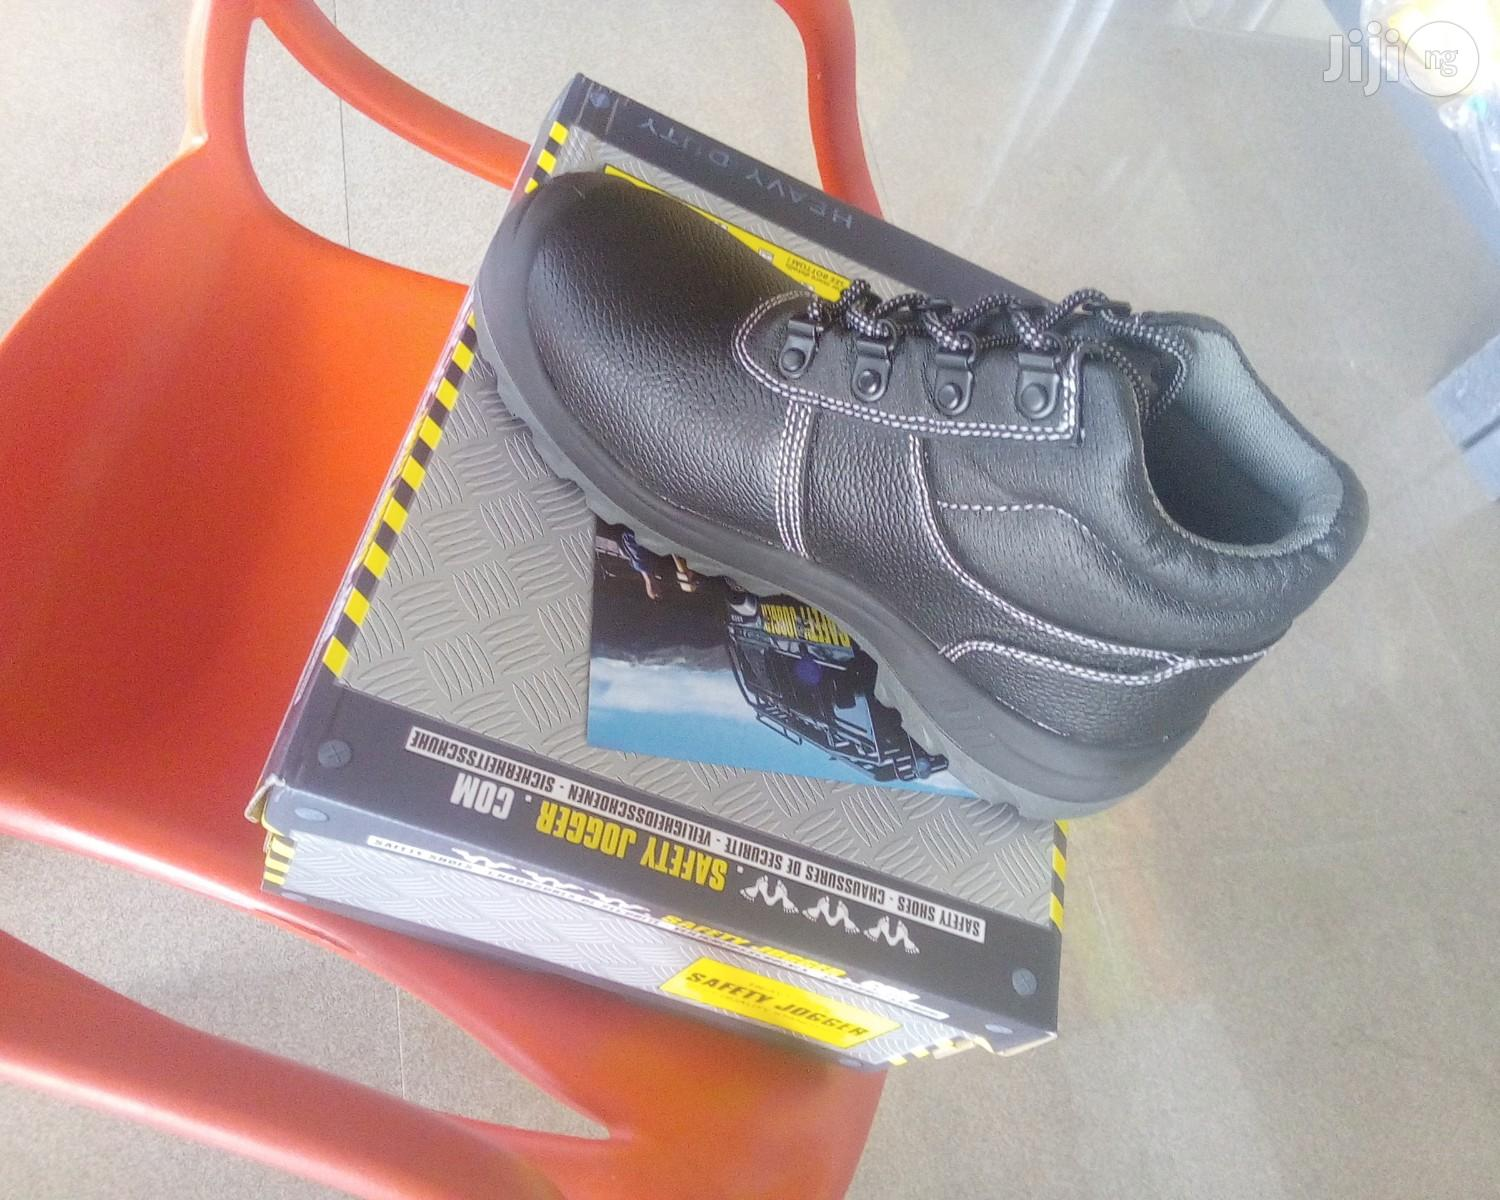 Safety Boots | Shoes for sale in Lugbe District, Abuja (FCT) State, Nigeria